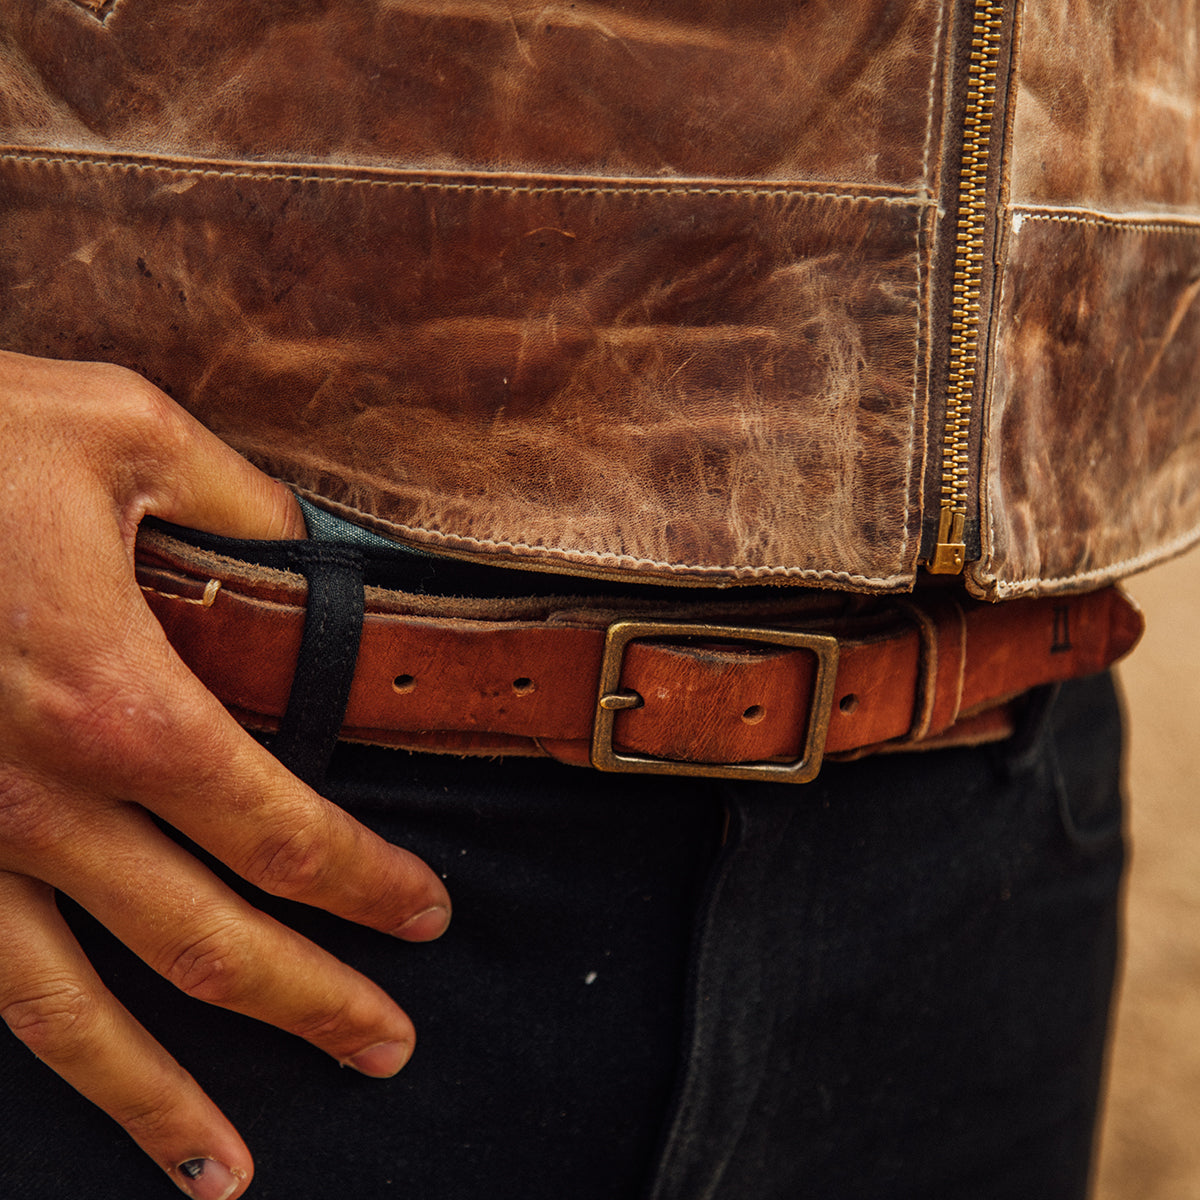 Stone-Washed Ranger Belt No. 280